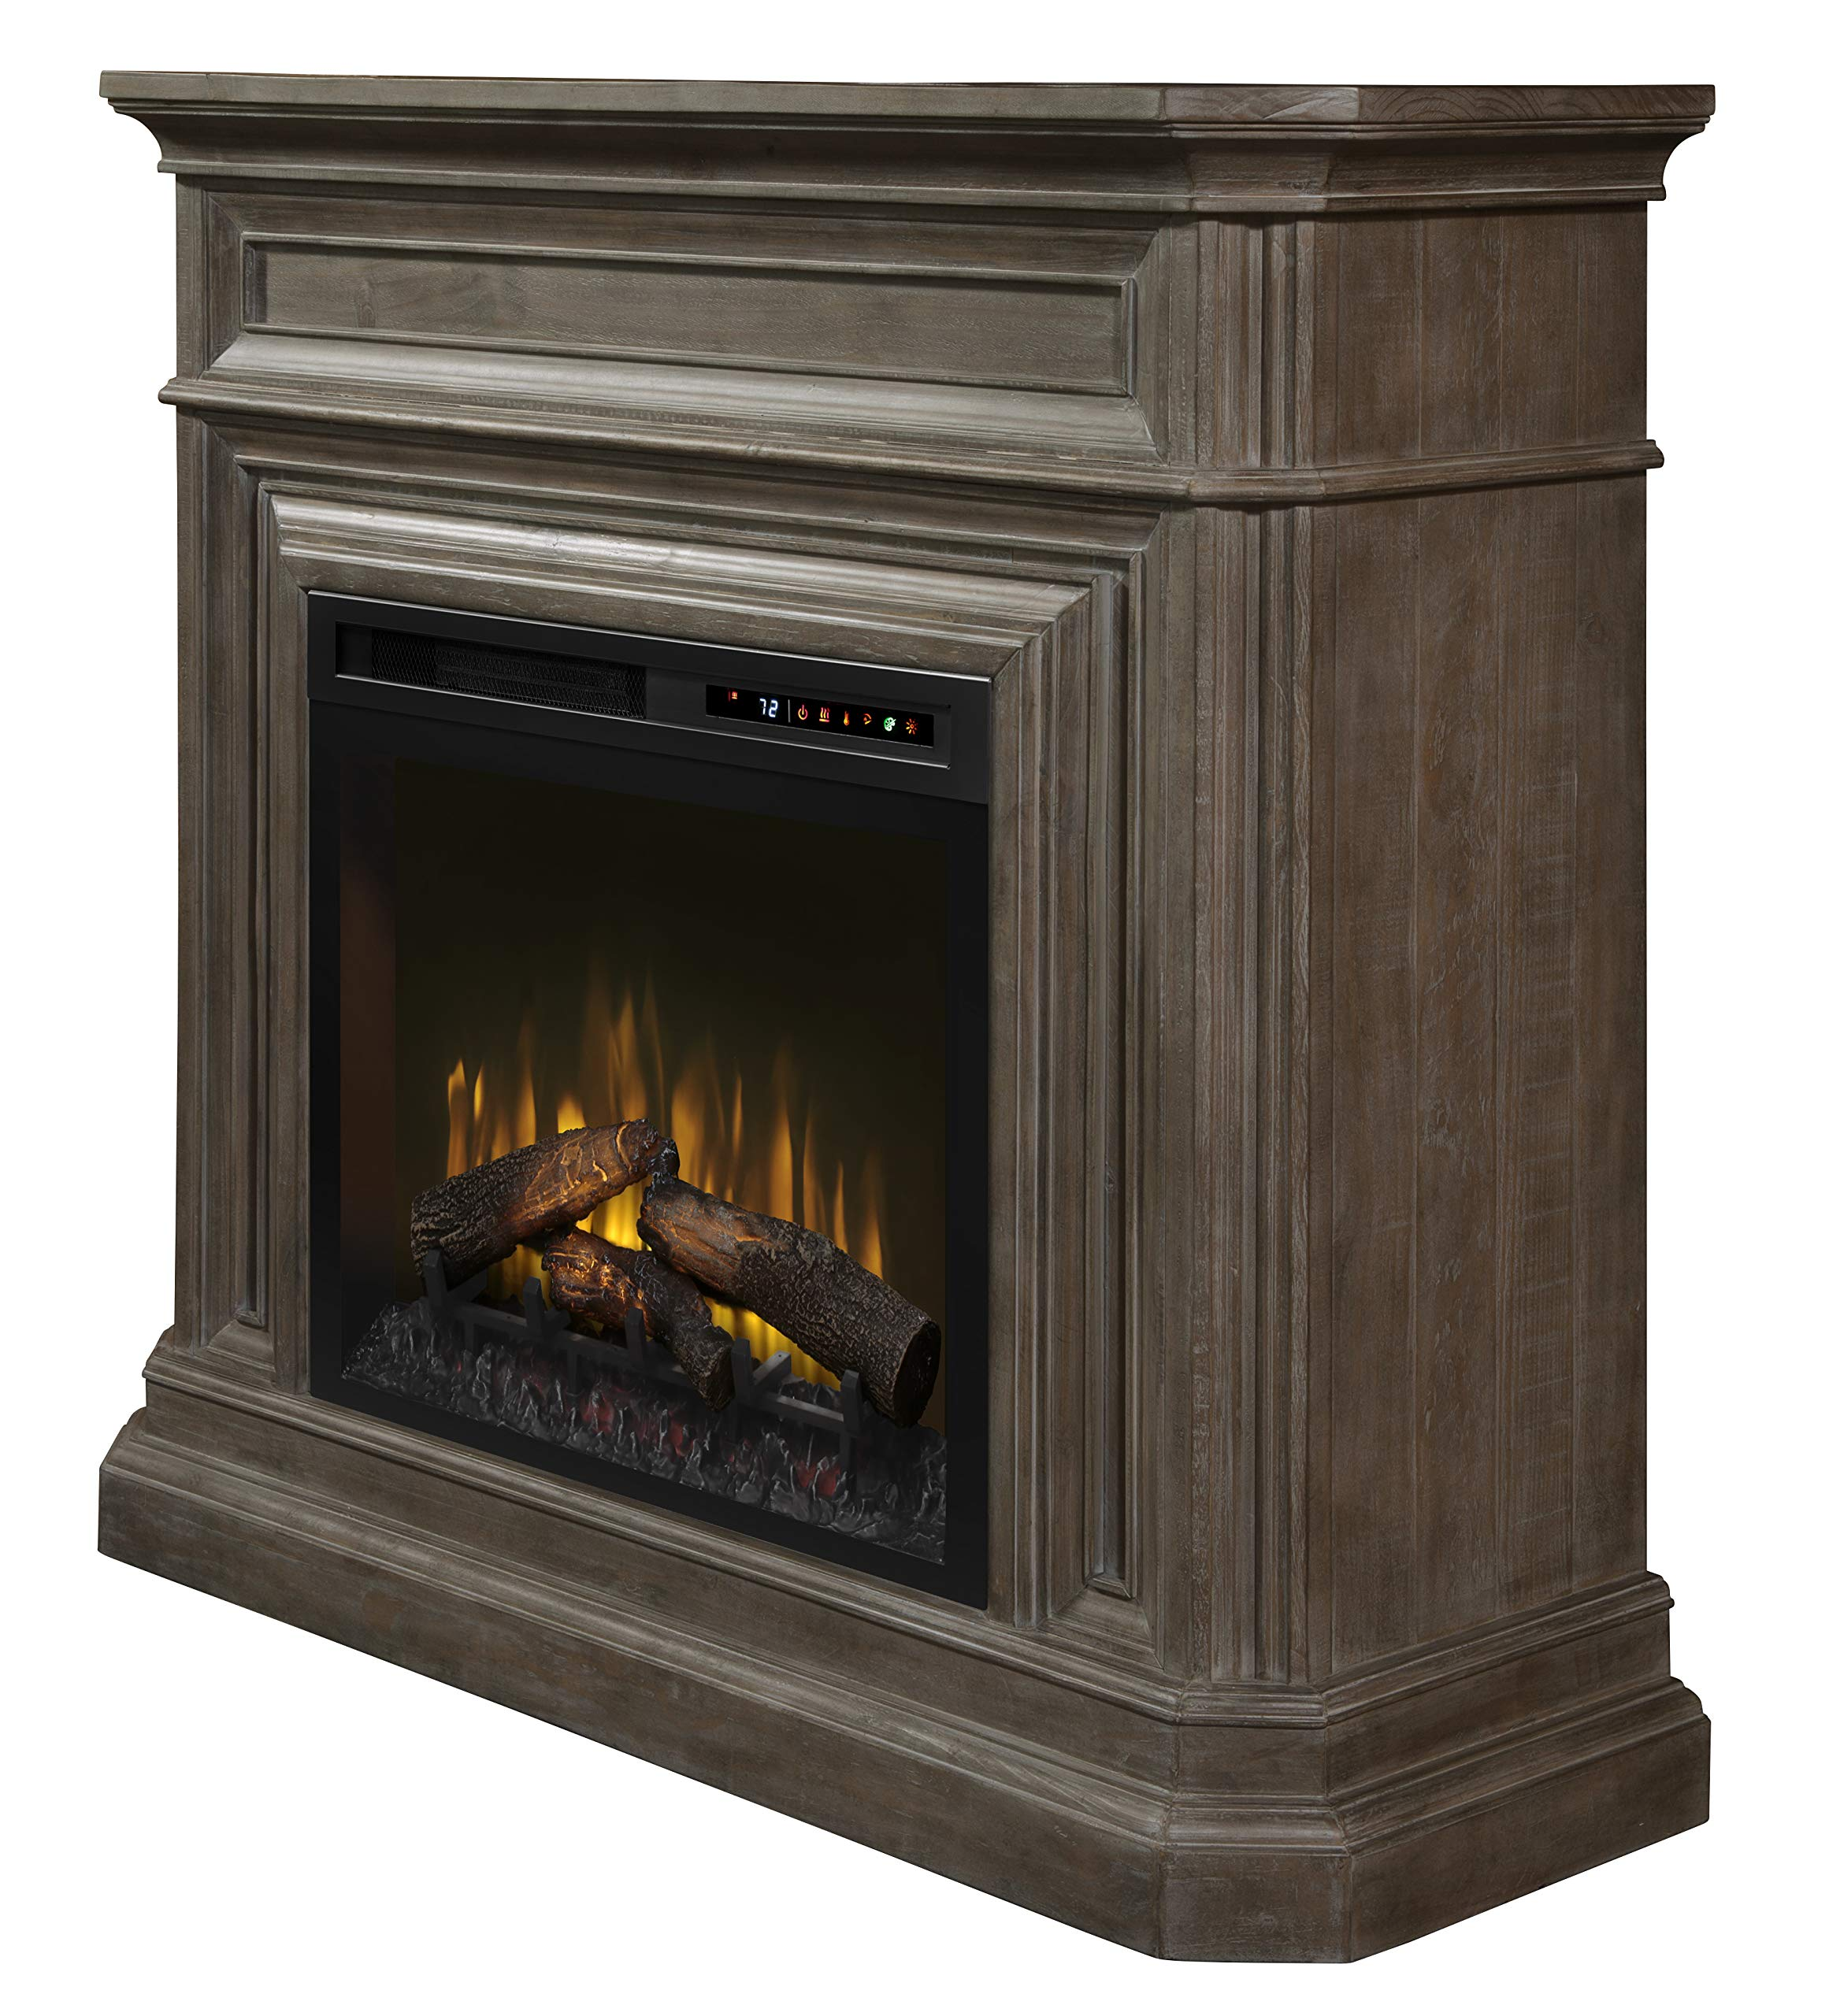 DIMPLEX Ophelia Mantel Electric Fireplace with Logs by DIMPLEX